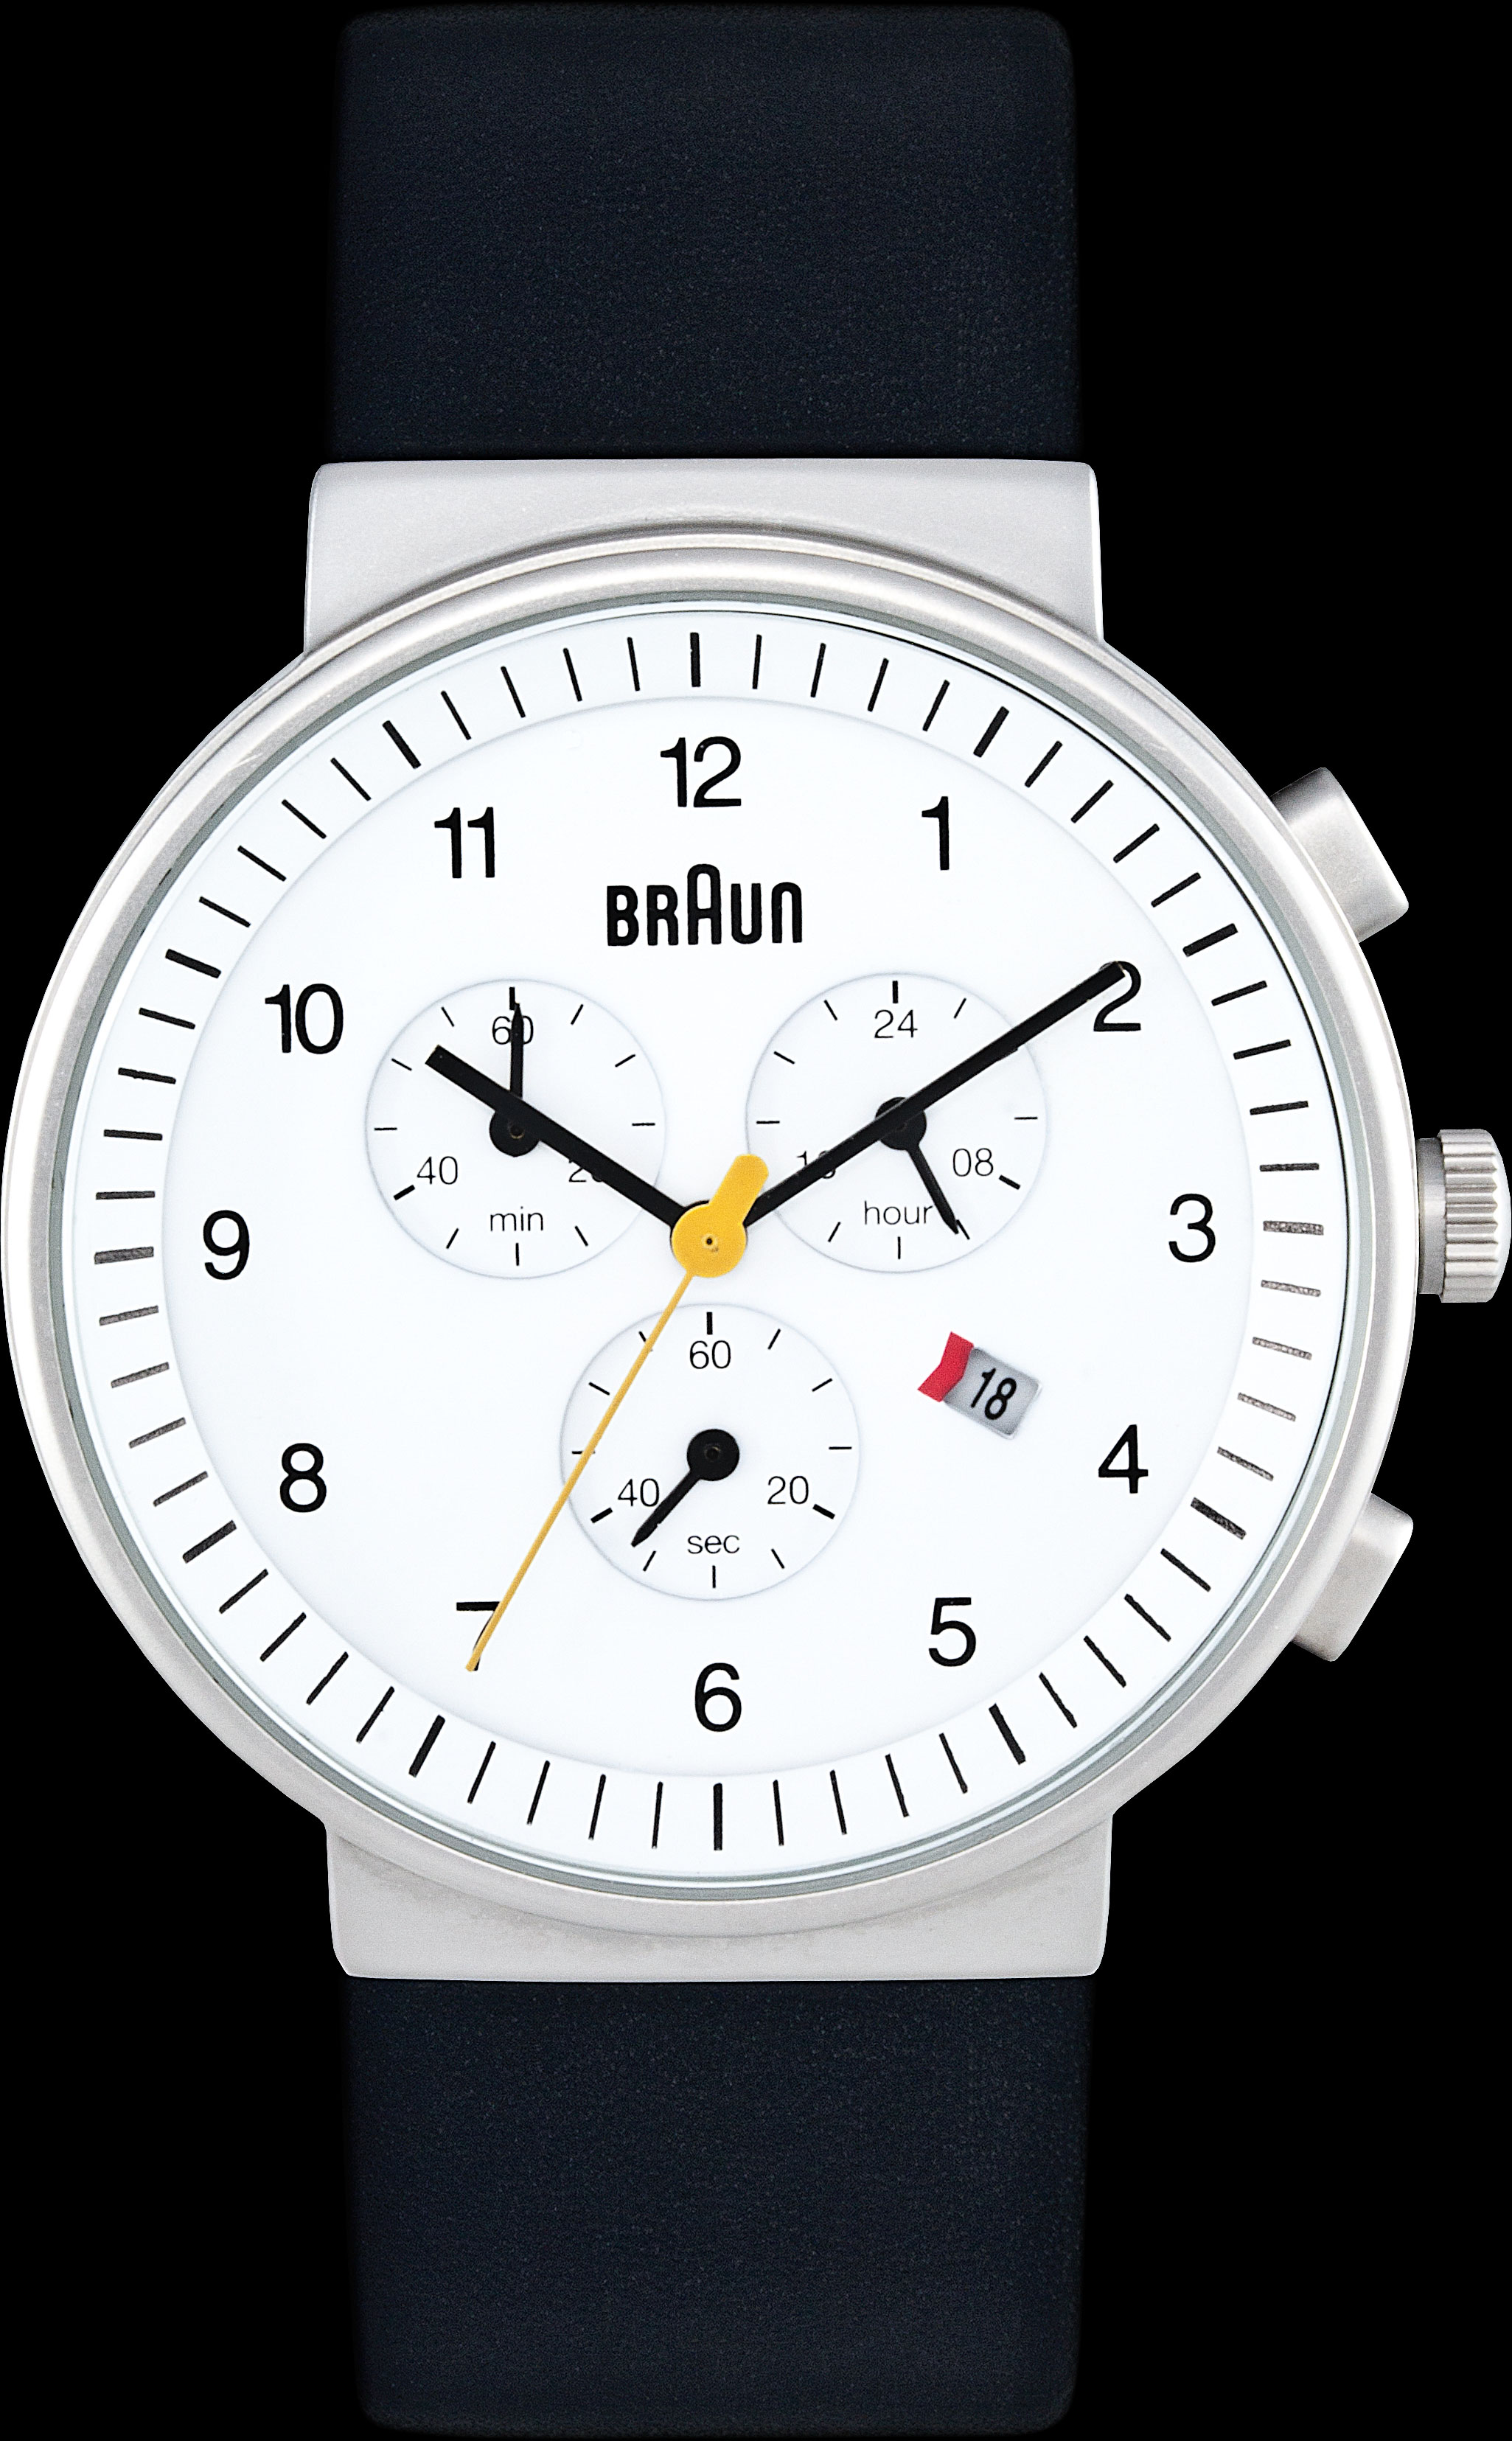 from happy front fans these quartz are classic watches news will in activities wristwatch company sports like case original and made travelers unique of round chronographs braun which